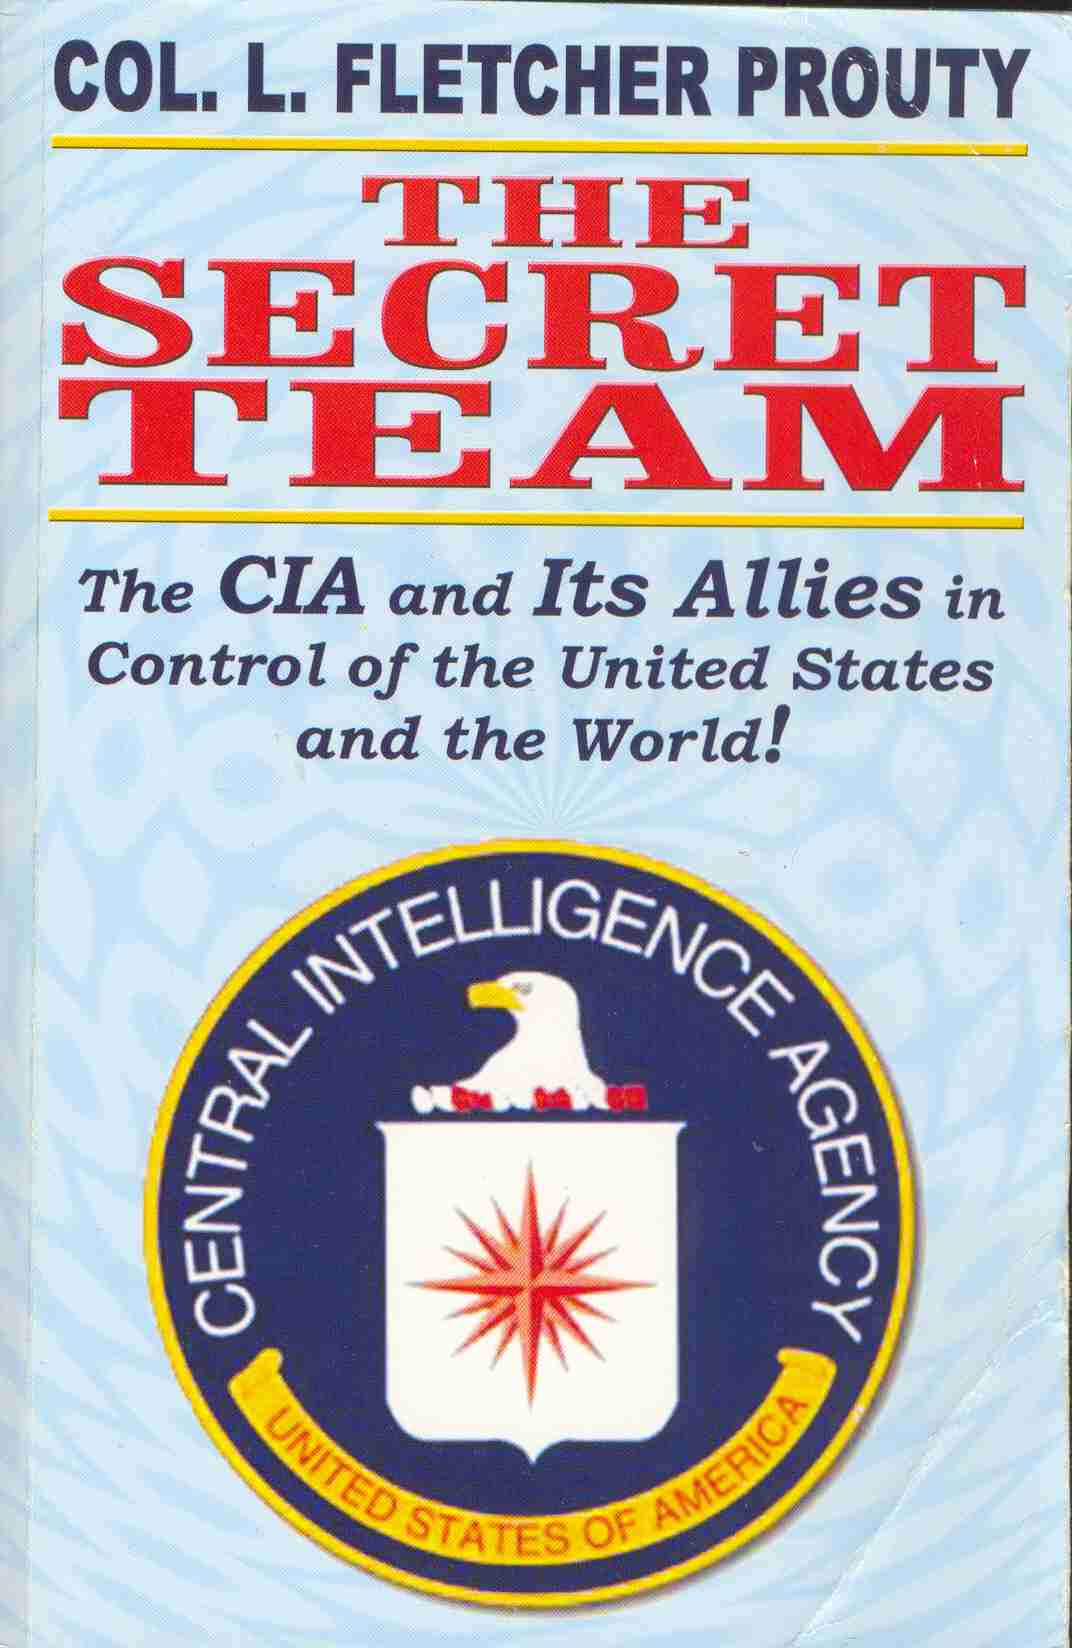 The Secret Team by USAF Colonel L. Fletcher Prouty